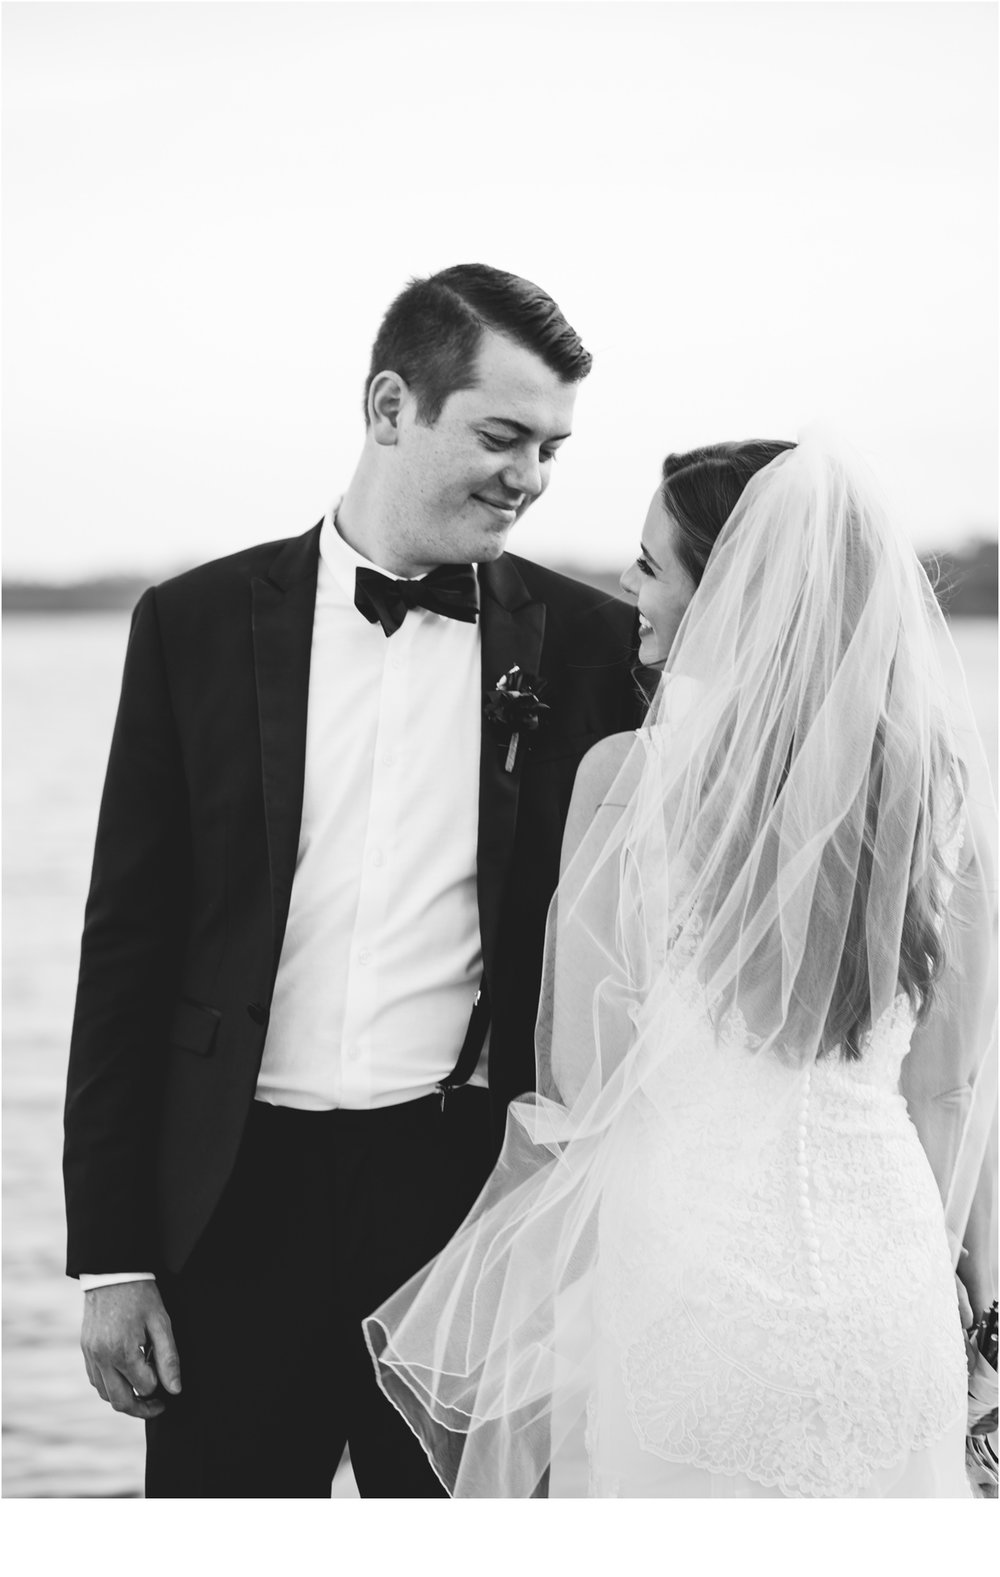 Rainey_Gregg_Photography_St._Simons_Island_Georgia_California_Wedding_Portrait_Photography_0875.jpg